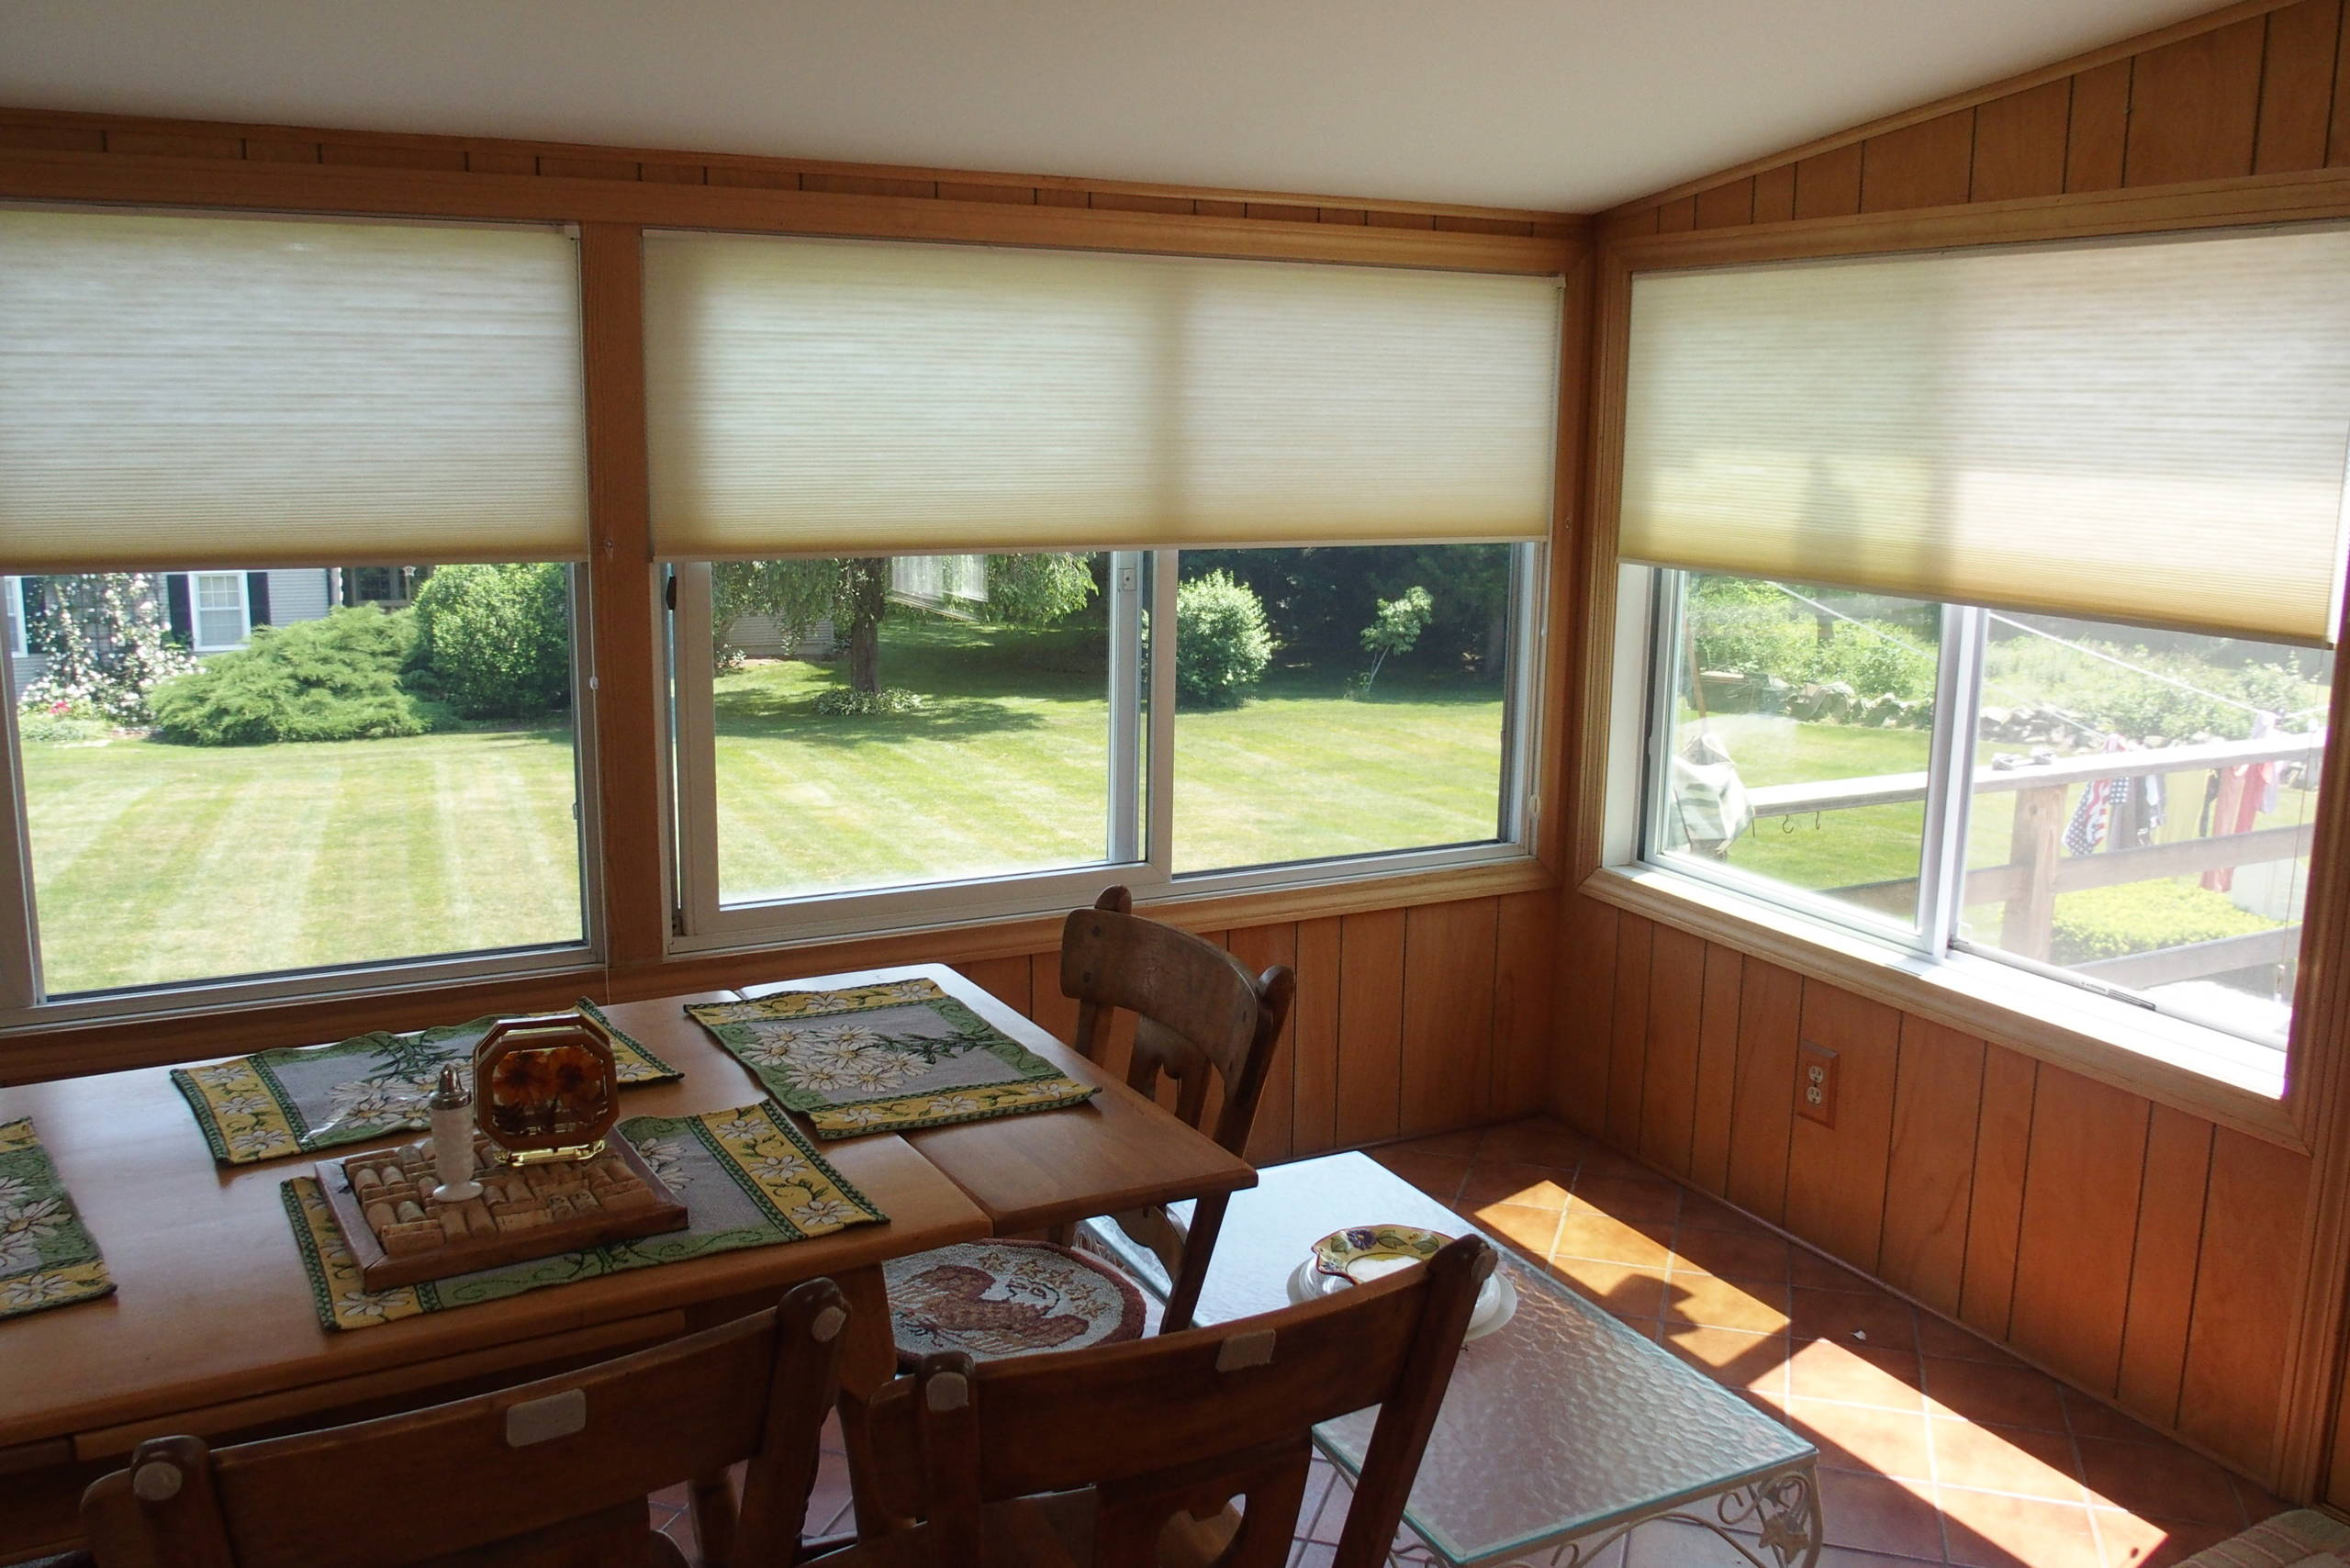 Hunter Douglas Honeycomb Shades in a Sun Porch